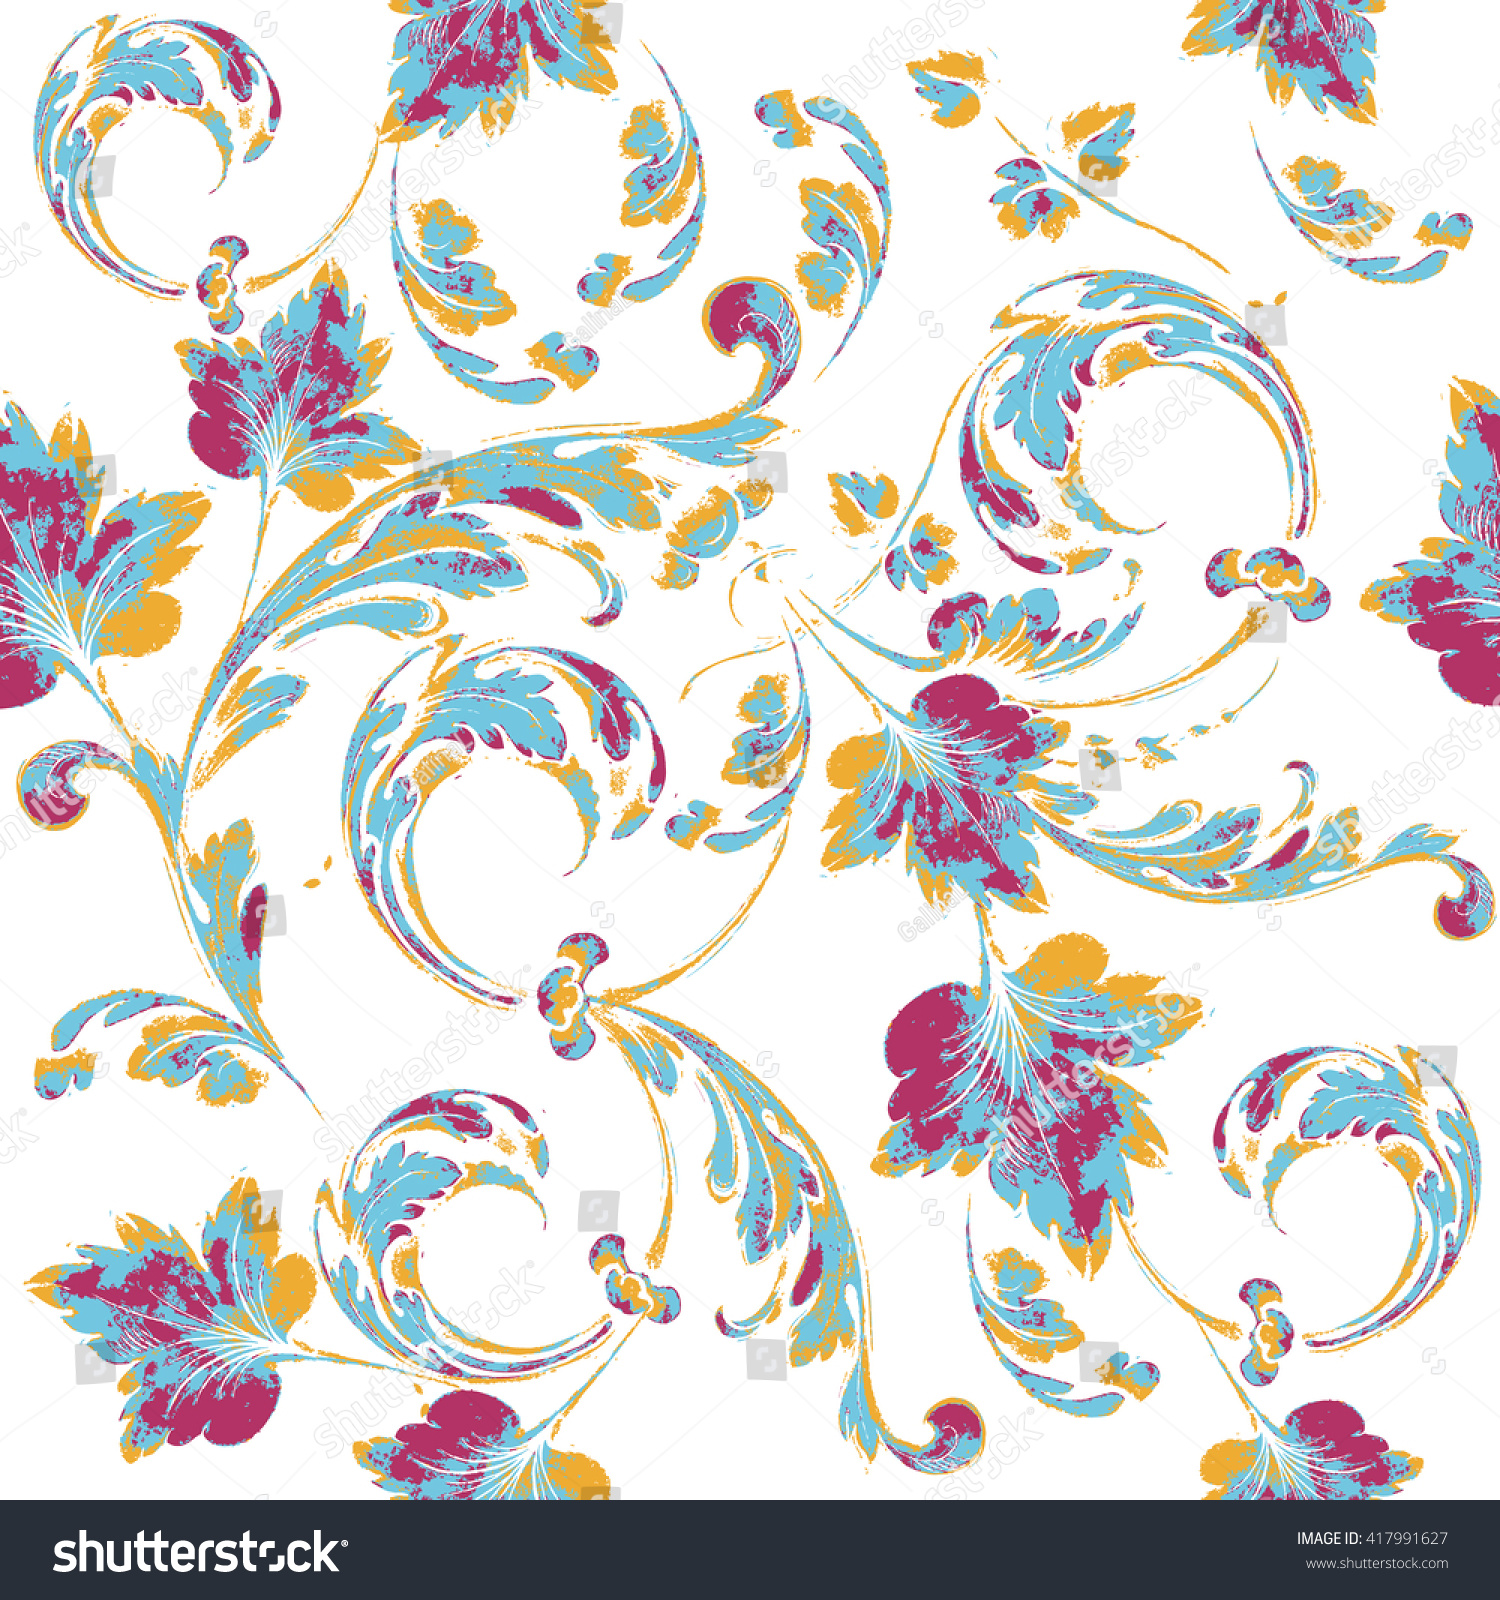 Wallpapers pattern fills web page backgrounds surface textures - Floral Texture Pattern Seamless Pattern Can Be Used For Wallpaper Pattern Fills Web